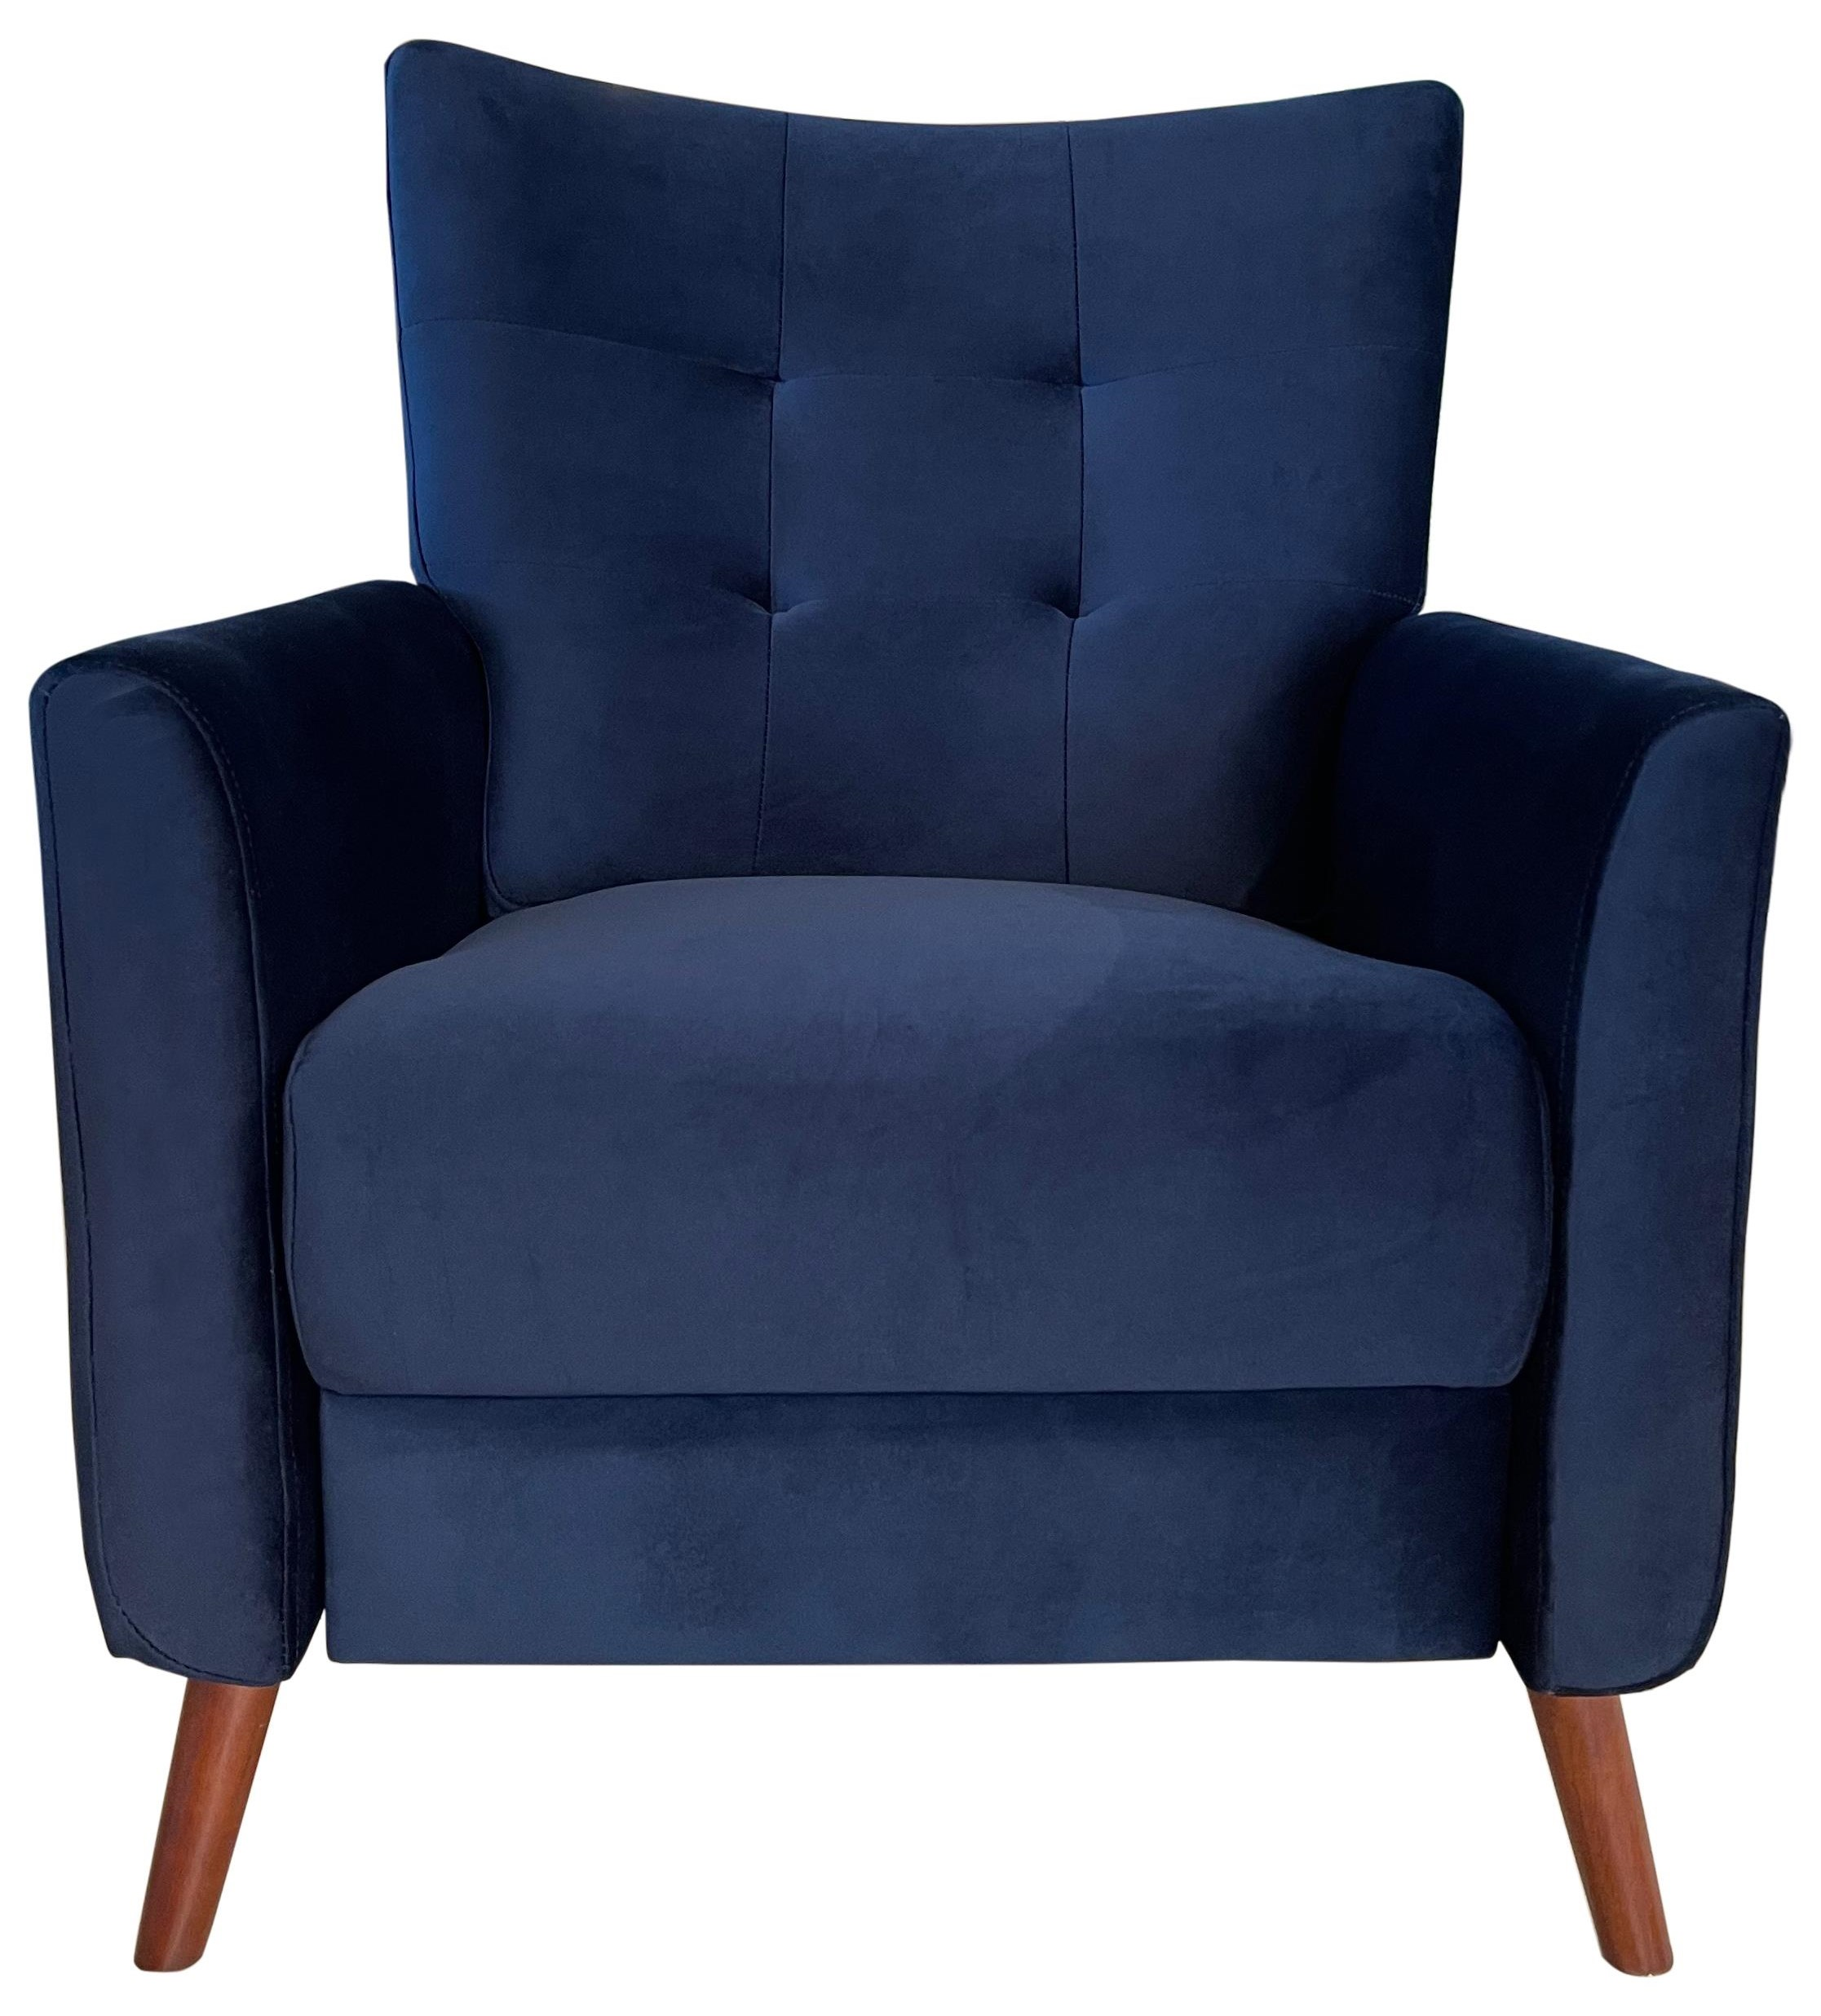 Coors Pushback Recliner by Urban Chic at Red Knot